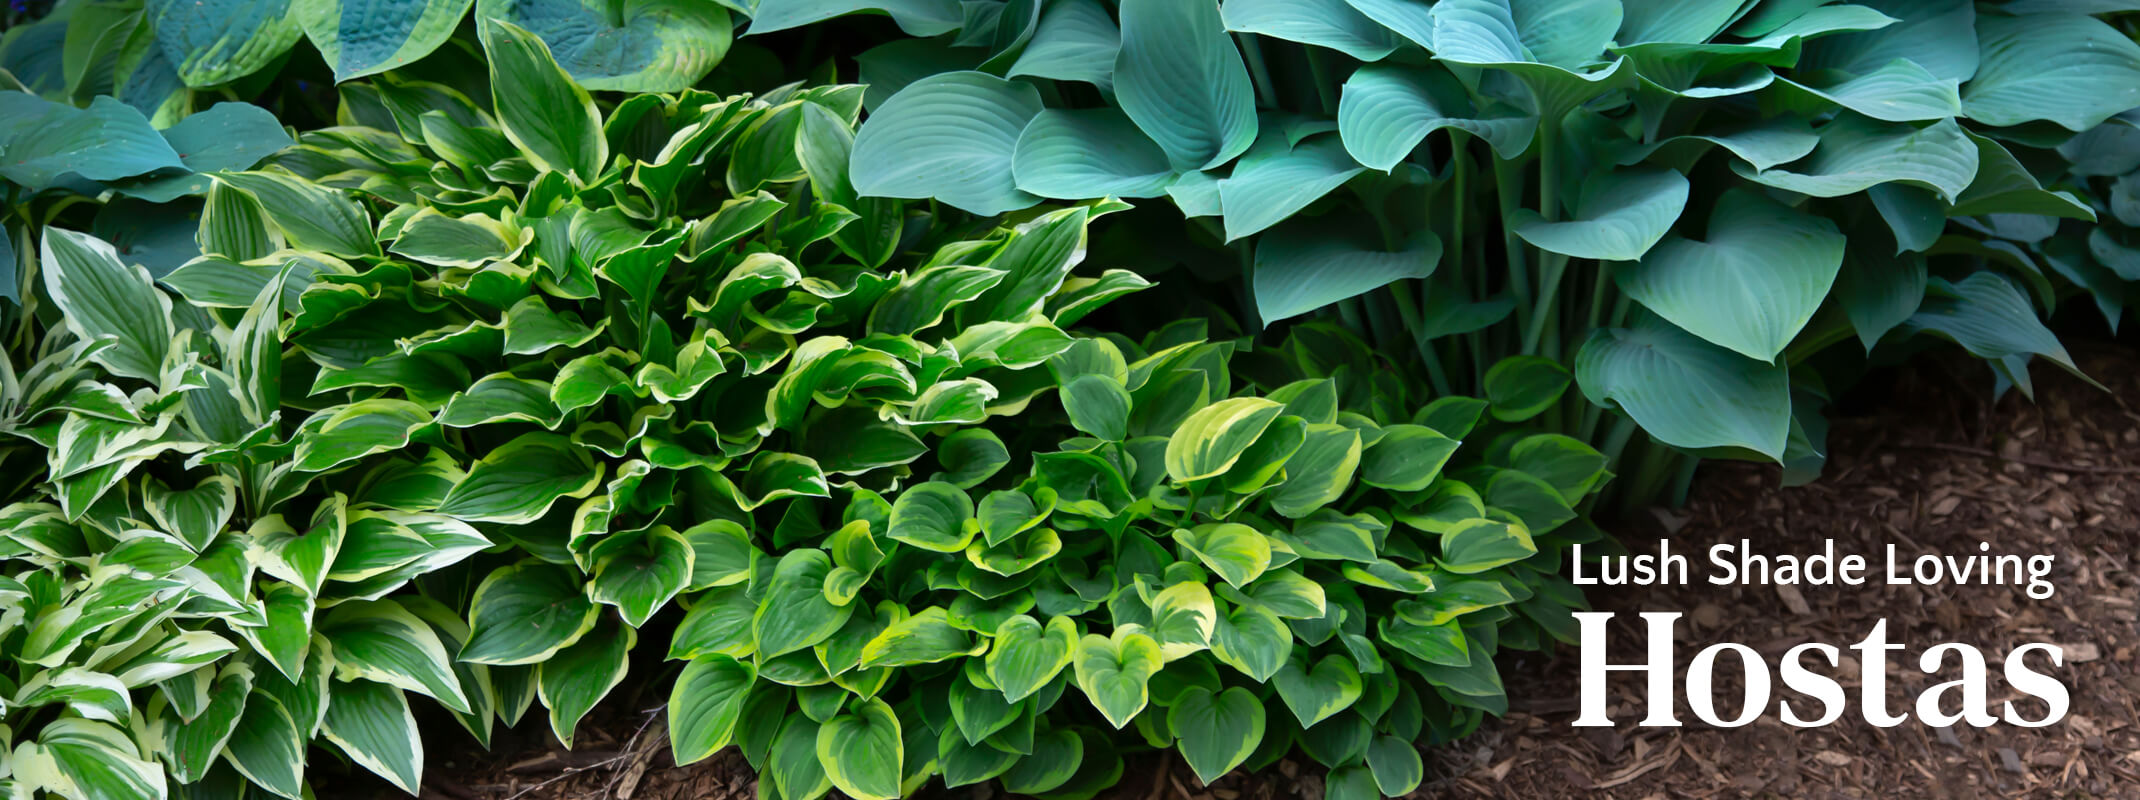 Assorted colors and styles of hostas with the words: Lush Shade Loving Hostas on the image